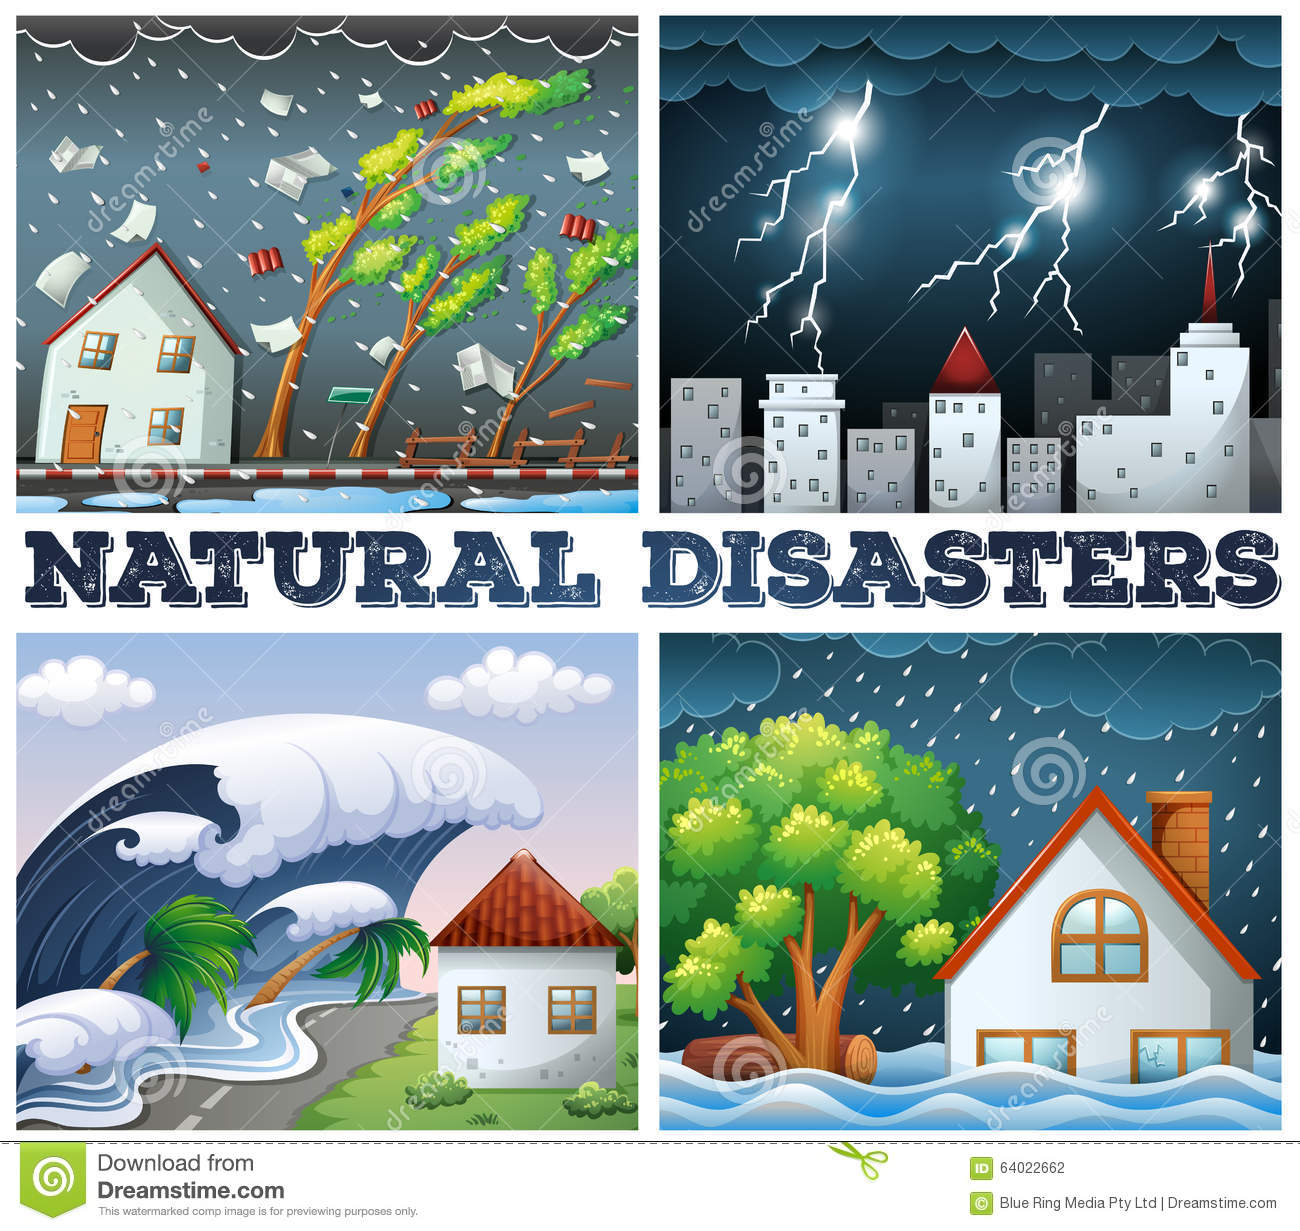 About Natural Disasters For Kids